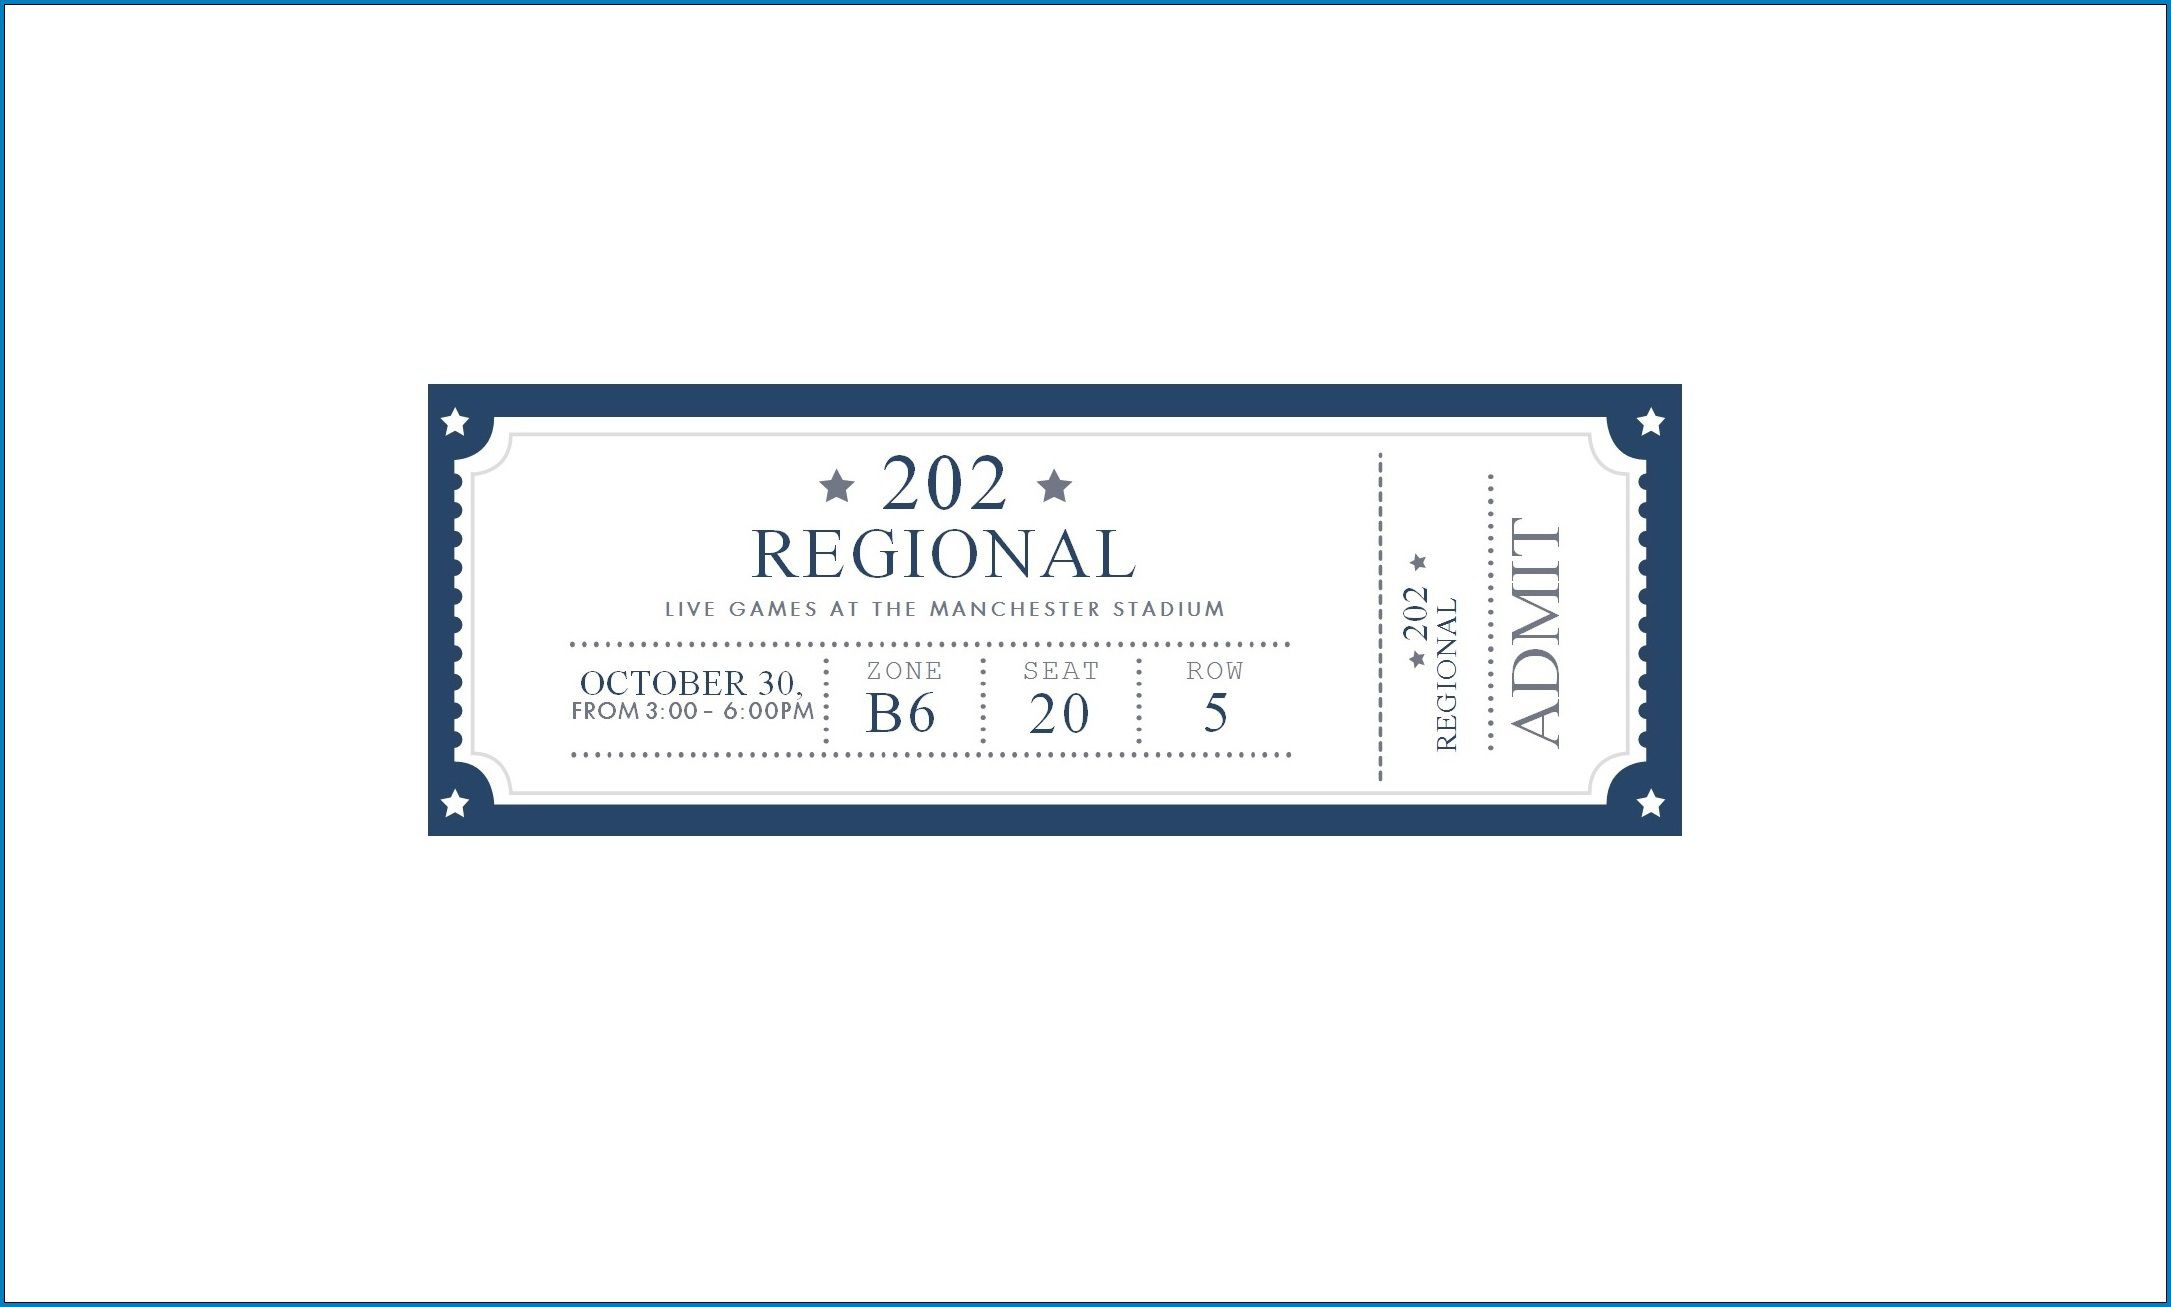 006 Breathtaking Free Event Ticket Template Printable Highest Quality Full